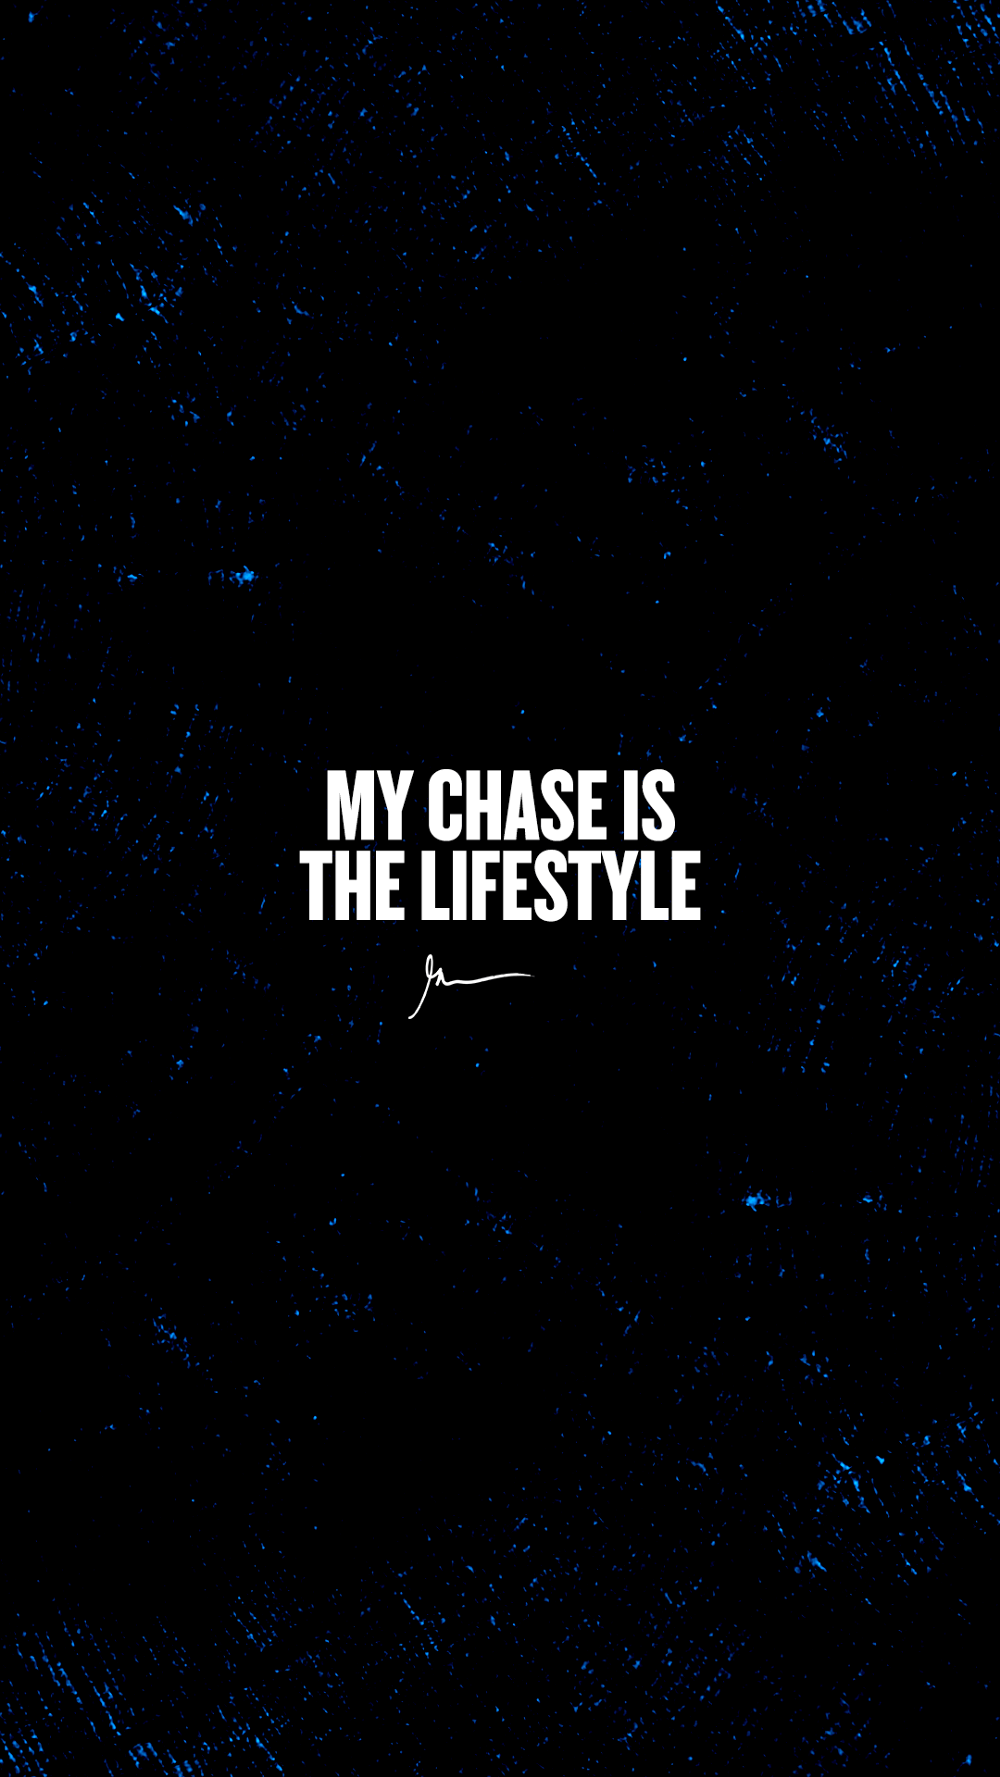 My Chase Is The Lifestyle